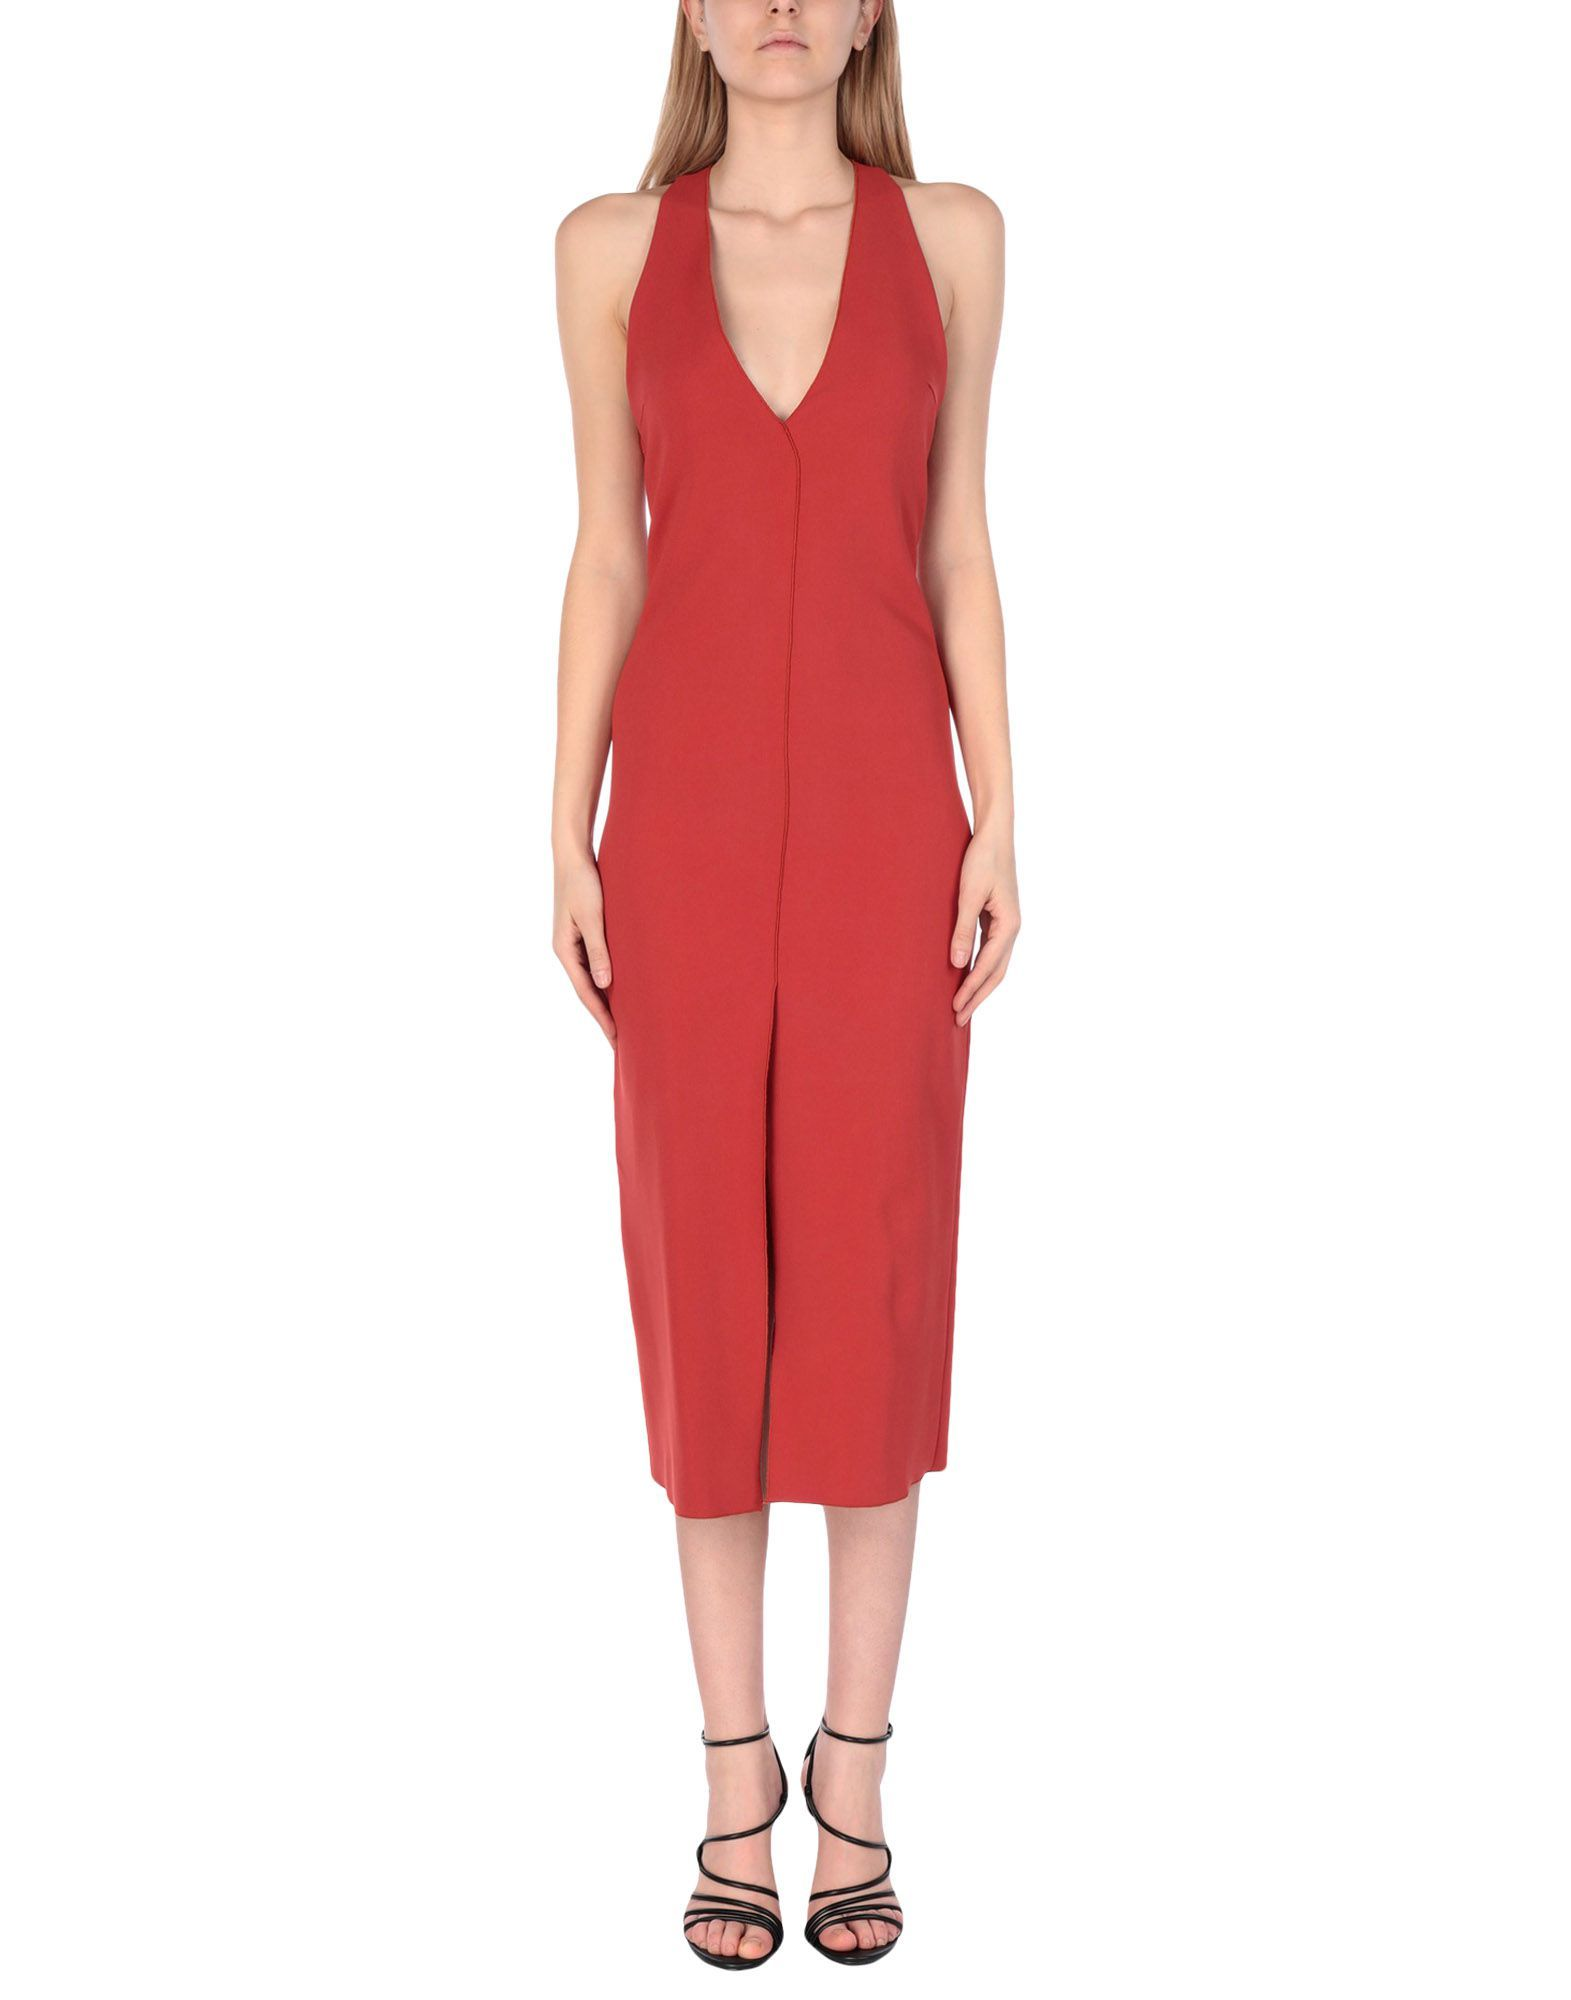 Antonelli Rust Sleeveless Dress